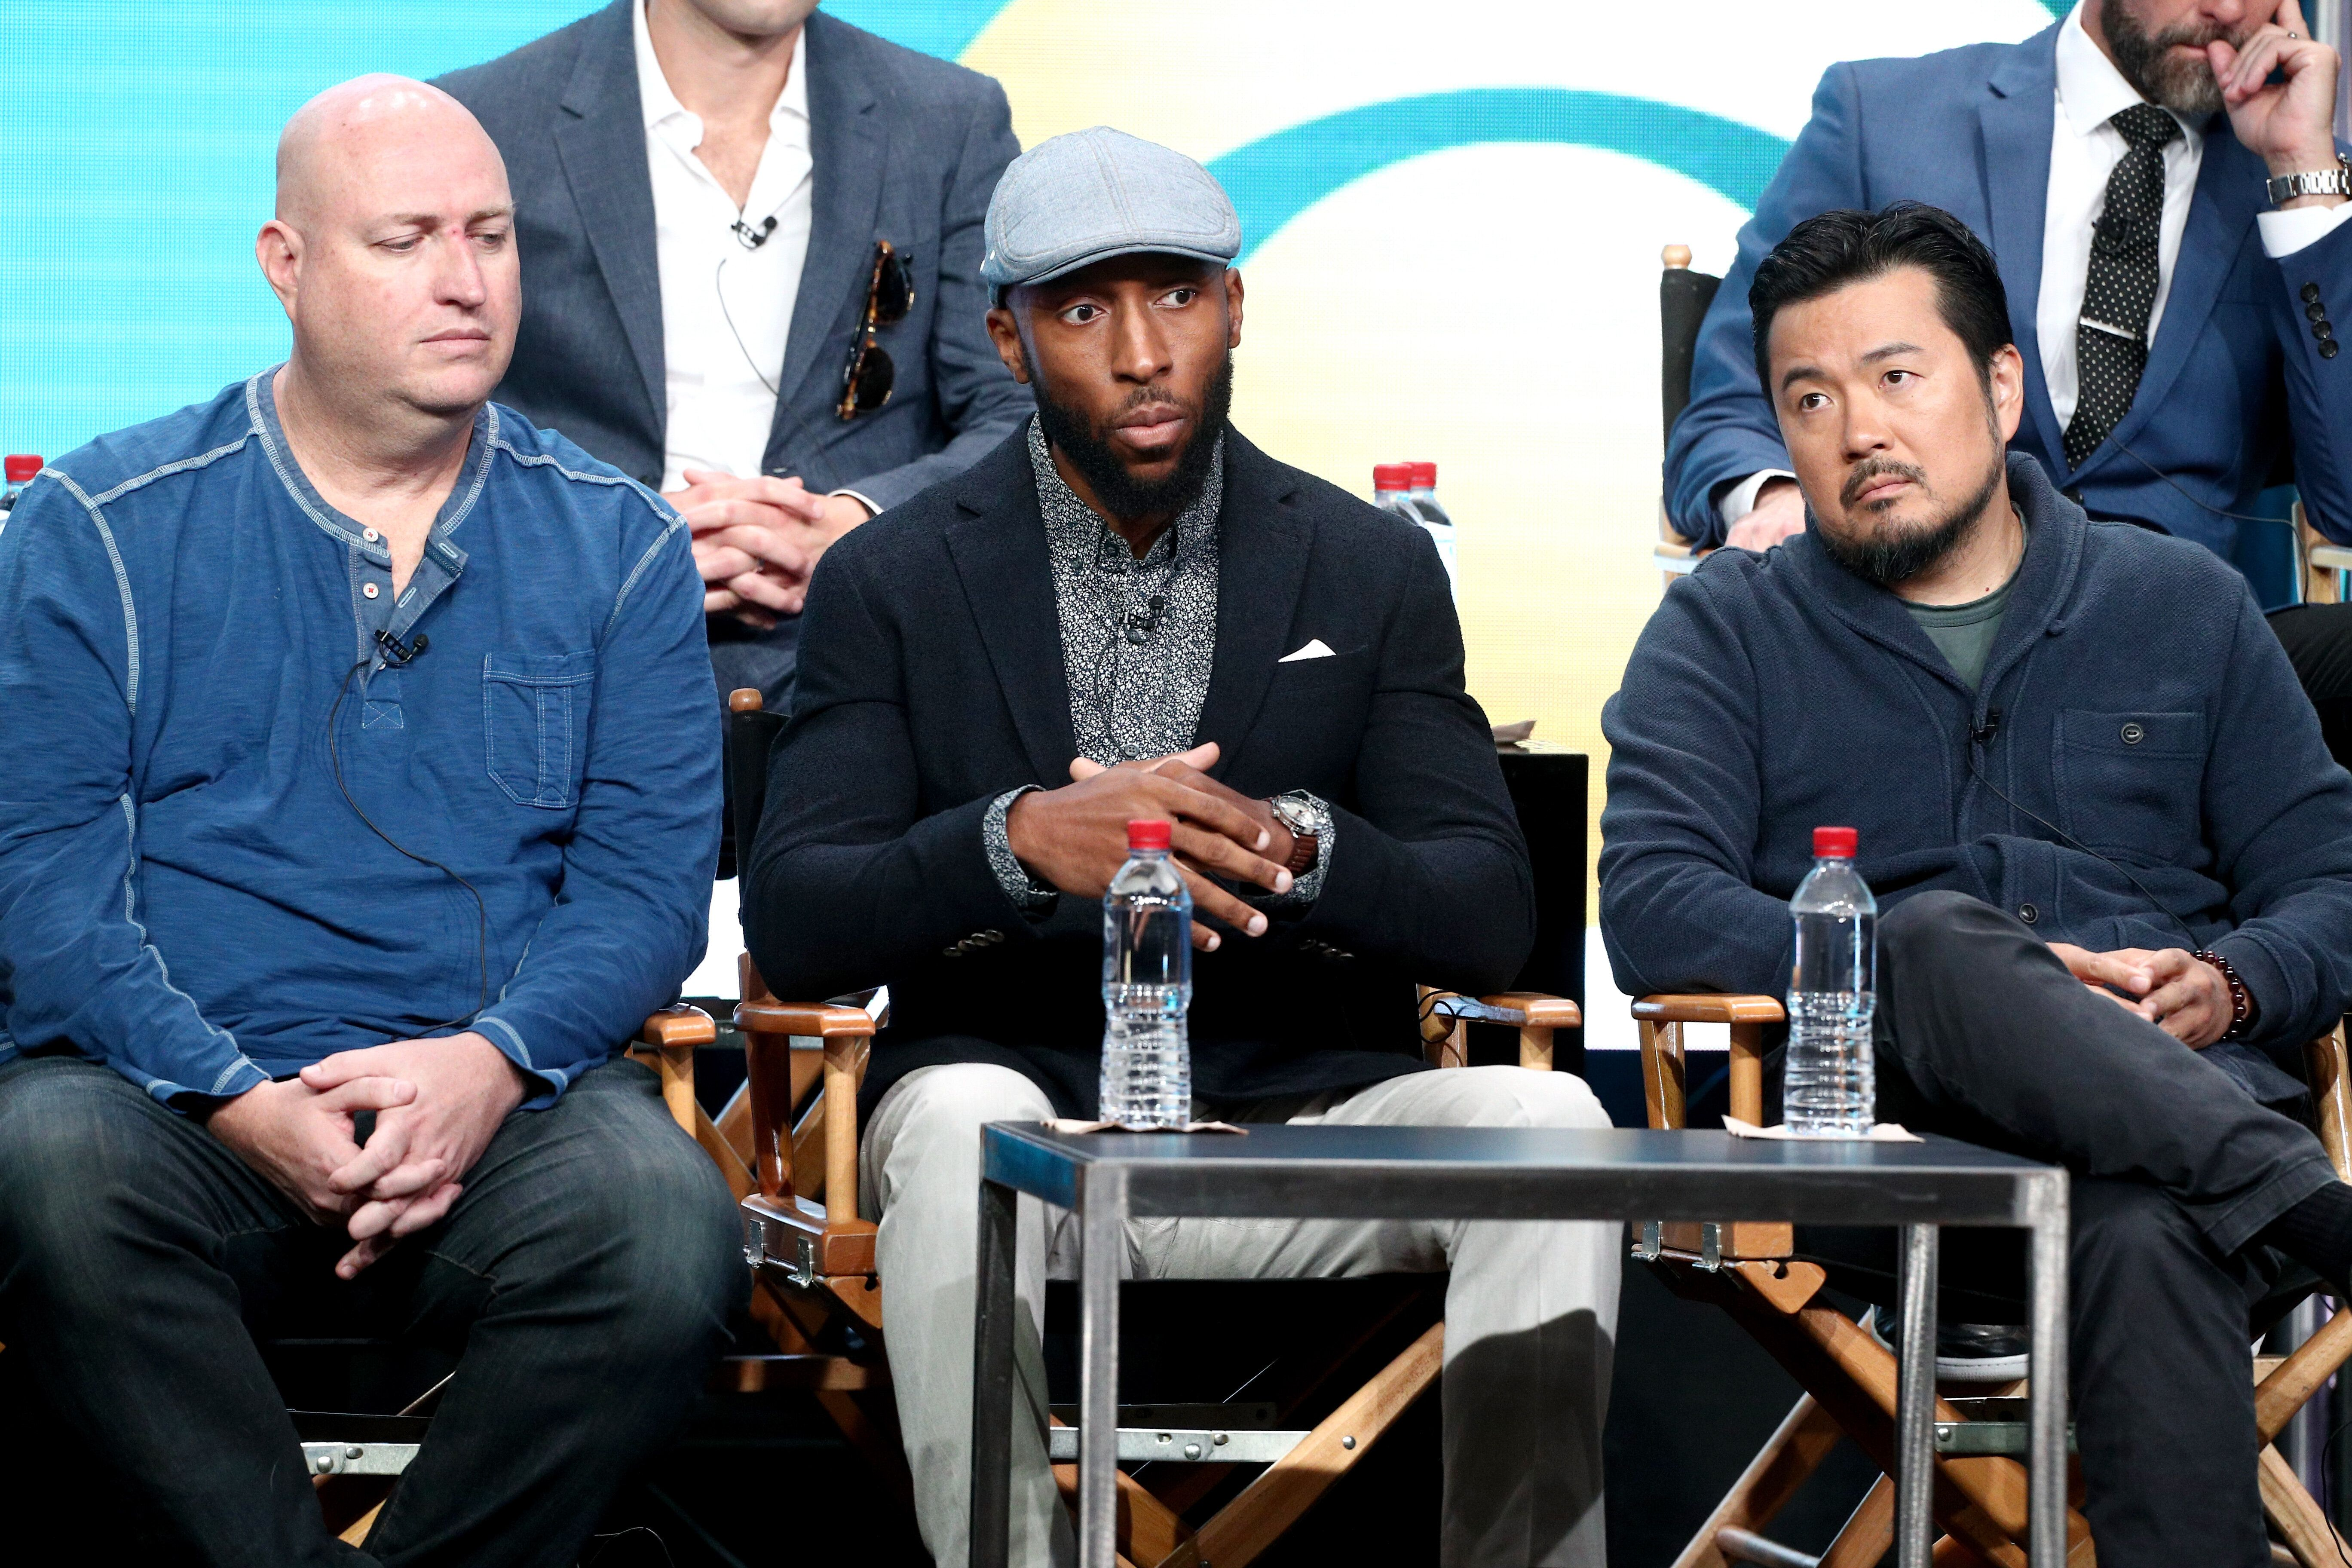 Executive producers Shawn Ryan (left), Aaron Rahsaan Thomas (middle) and Justin Lin (right) of 'S.W.A.T.' speak onstage during the CBS portion of the 2017 Summer Television Critics Association Press Tour at The Beverly Hilton Hotel on August 1, 2017 in Los Angeles.